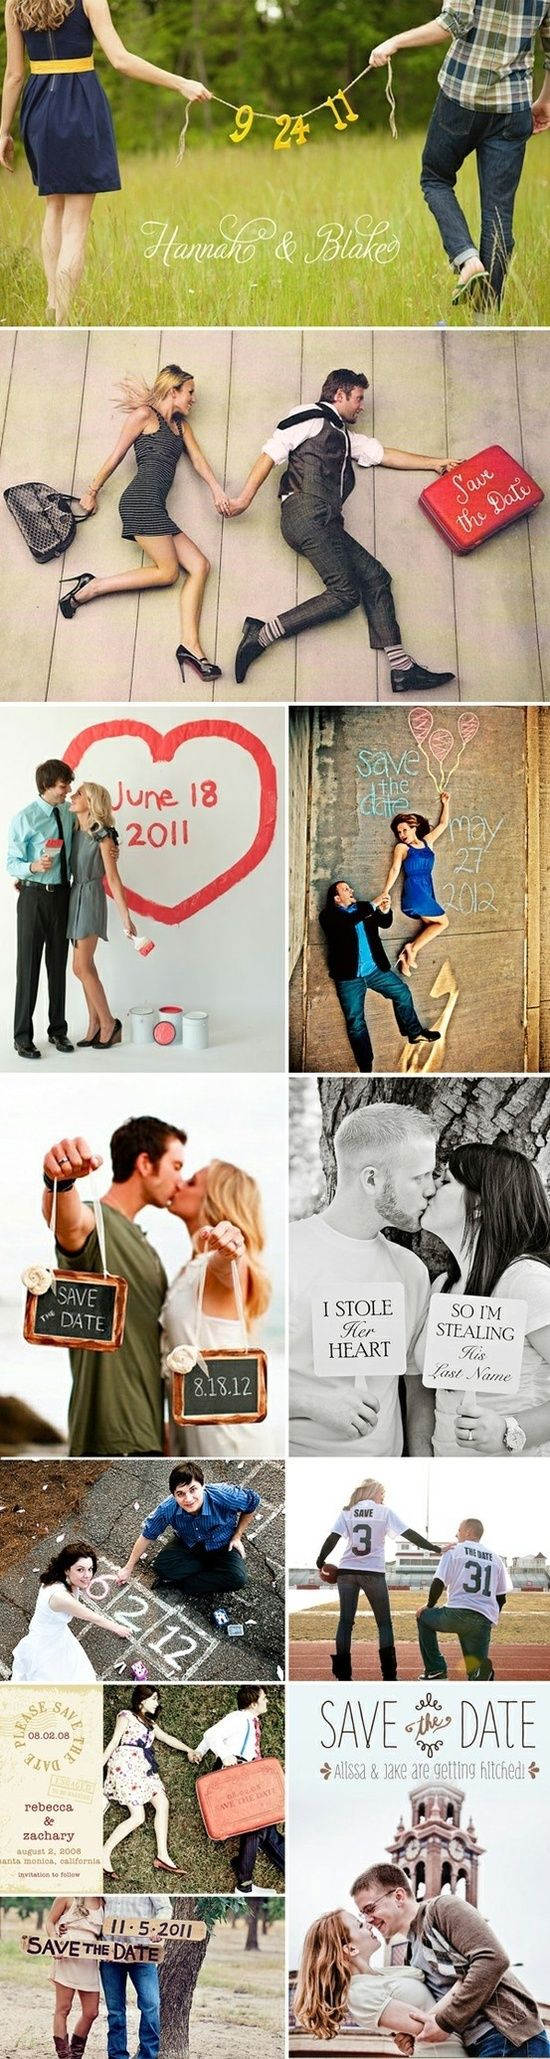 "Some cute save the date ideas! Personally like the ""i stole her heart... So i'm stealing his last name"""